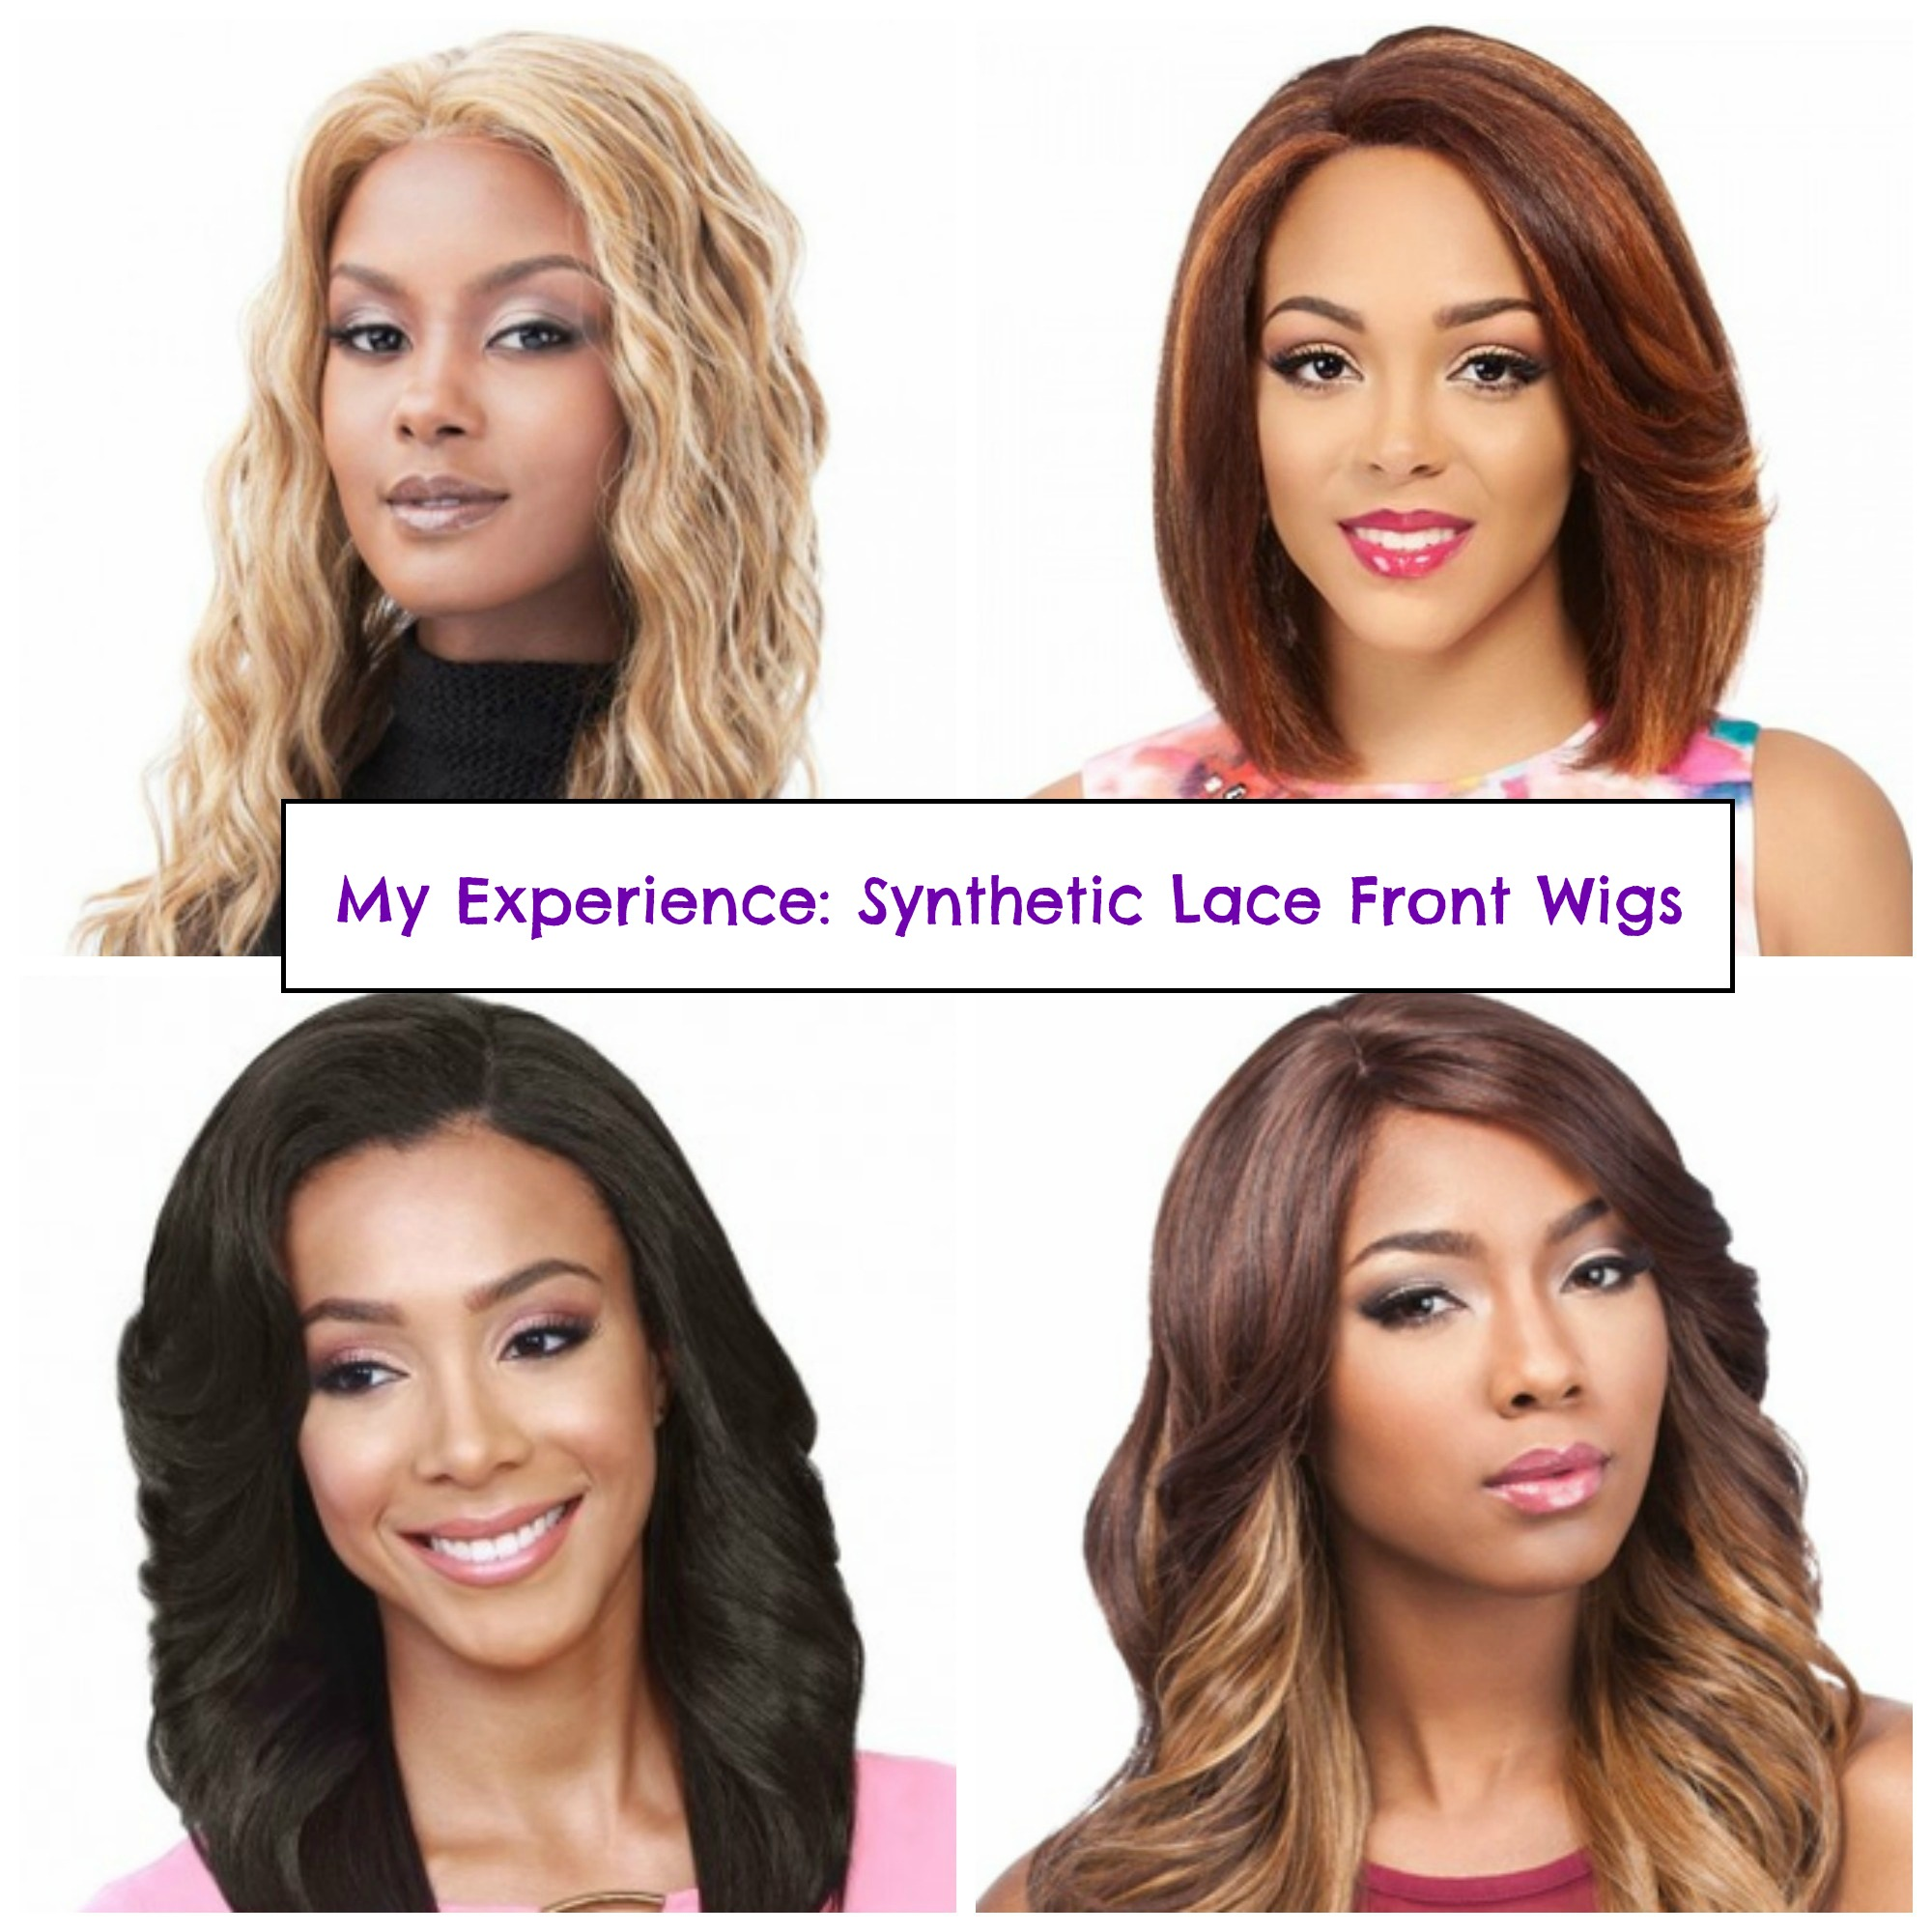 My Experience with Synthetic Lace Front Wigs - Wearing Lace Front Wigs